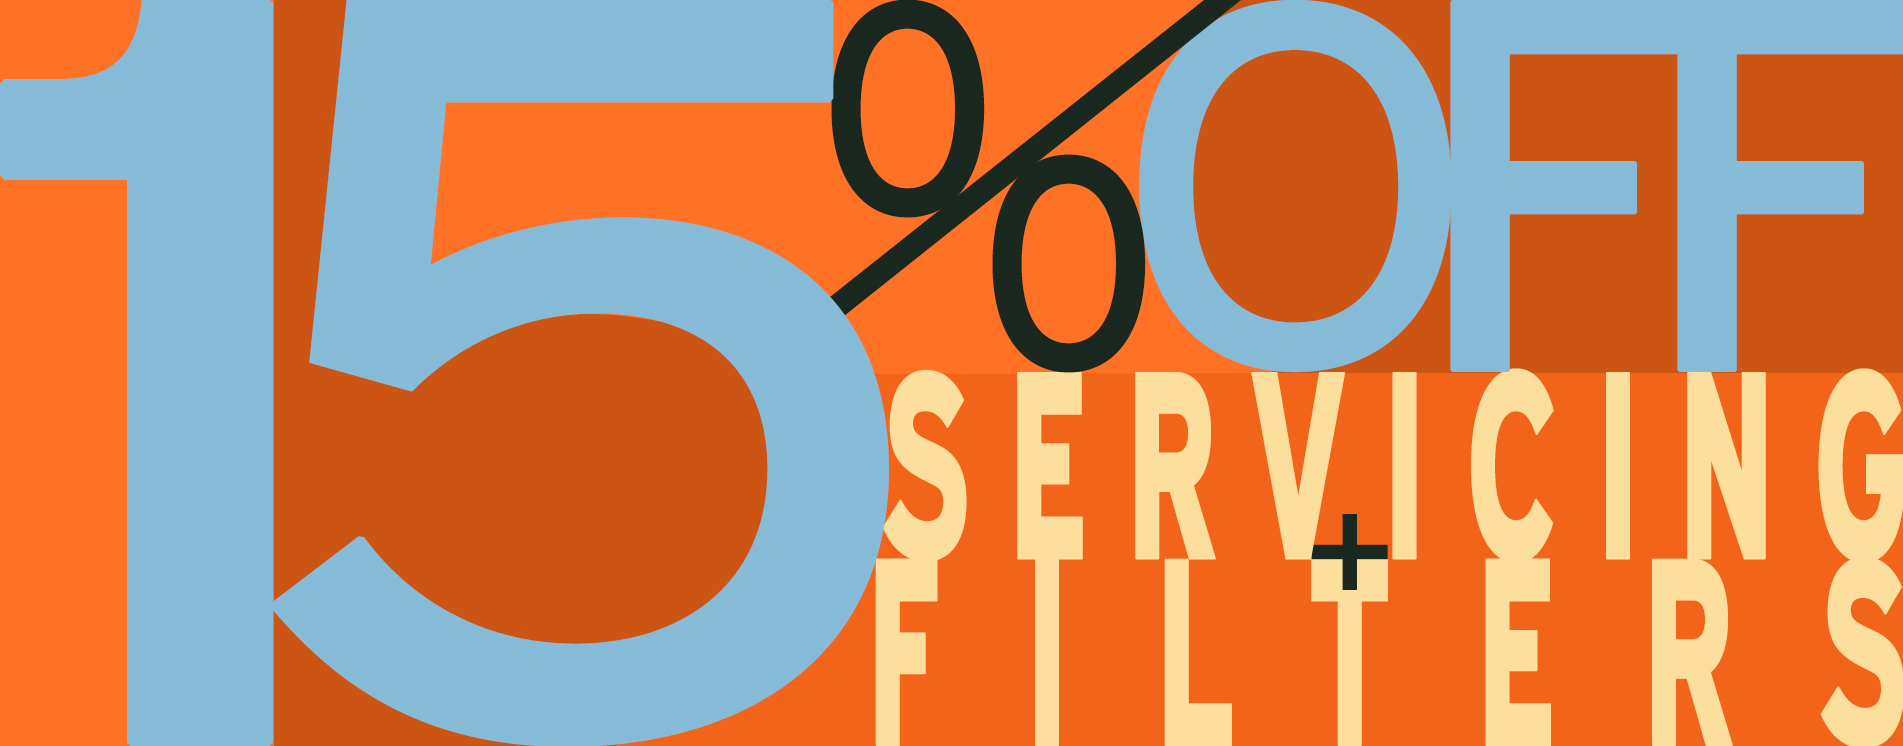 15% OFF Servicing & Filters